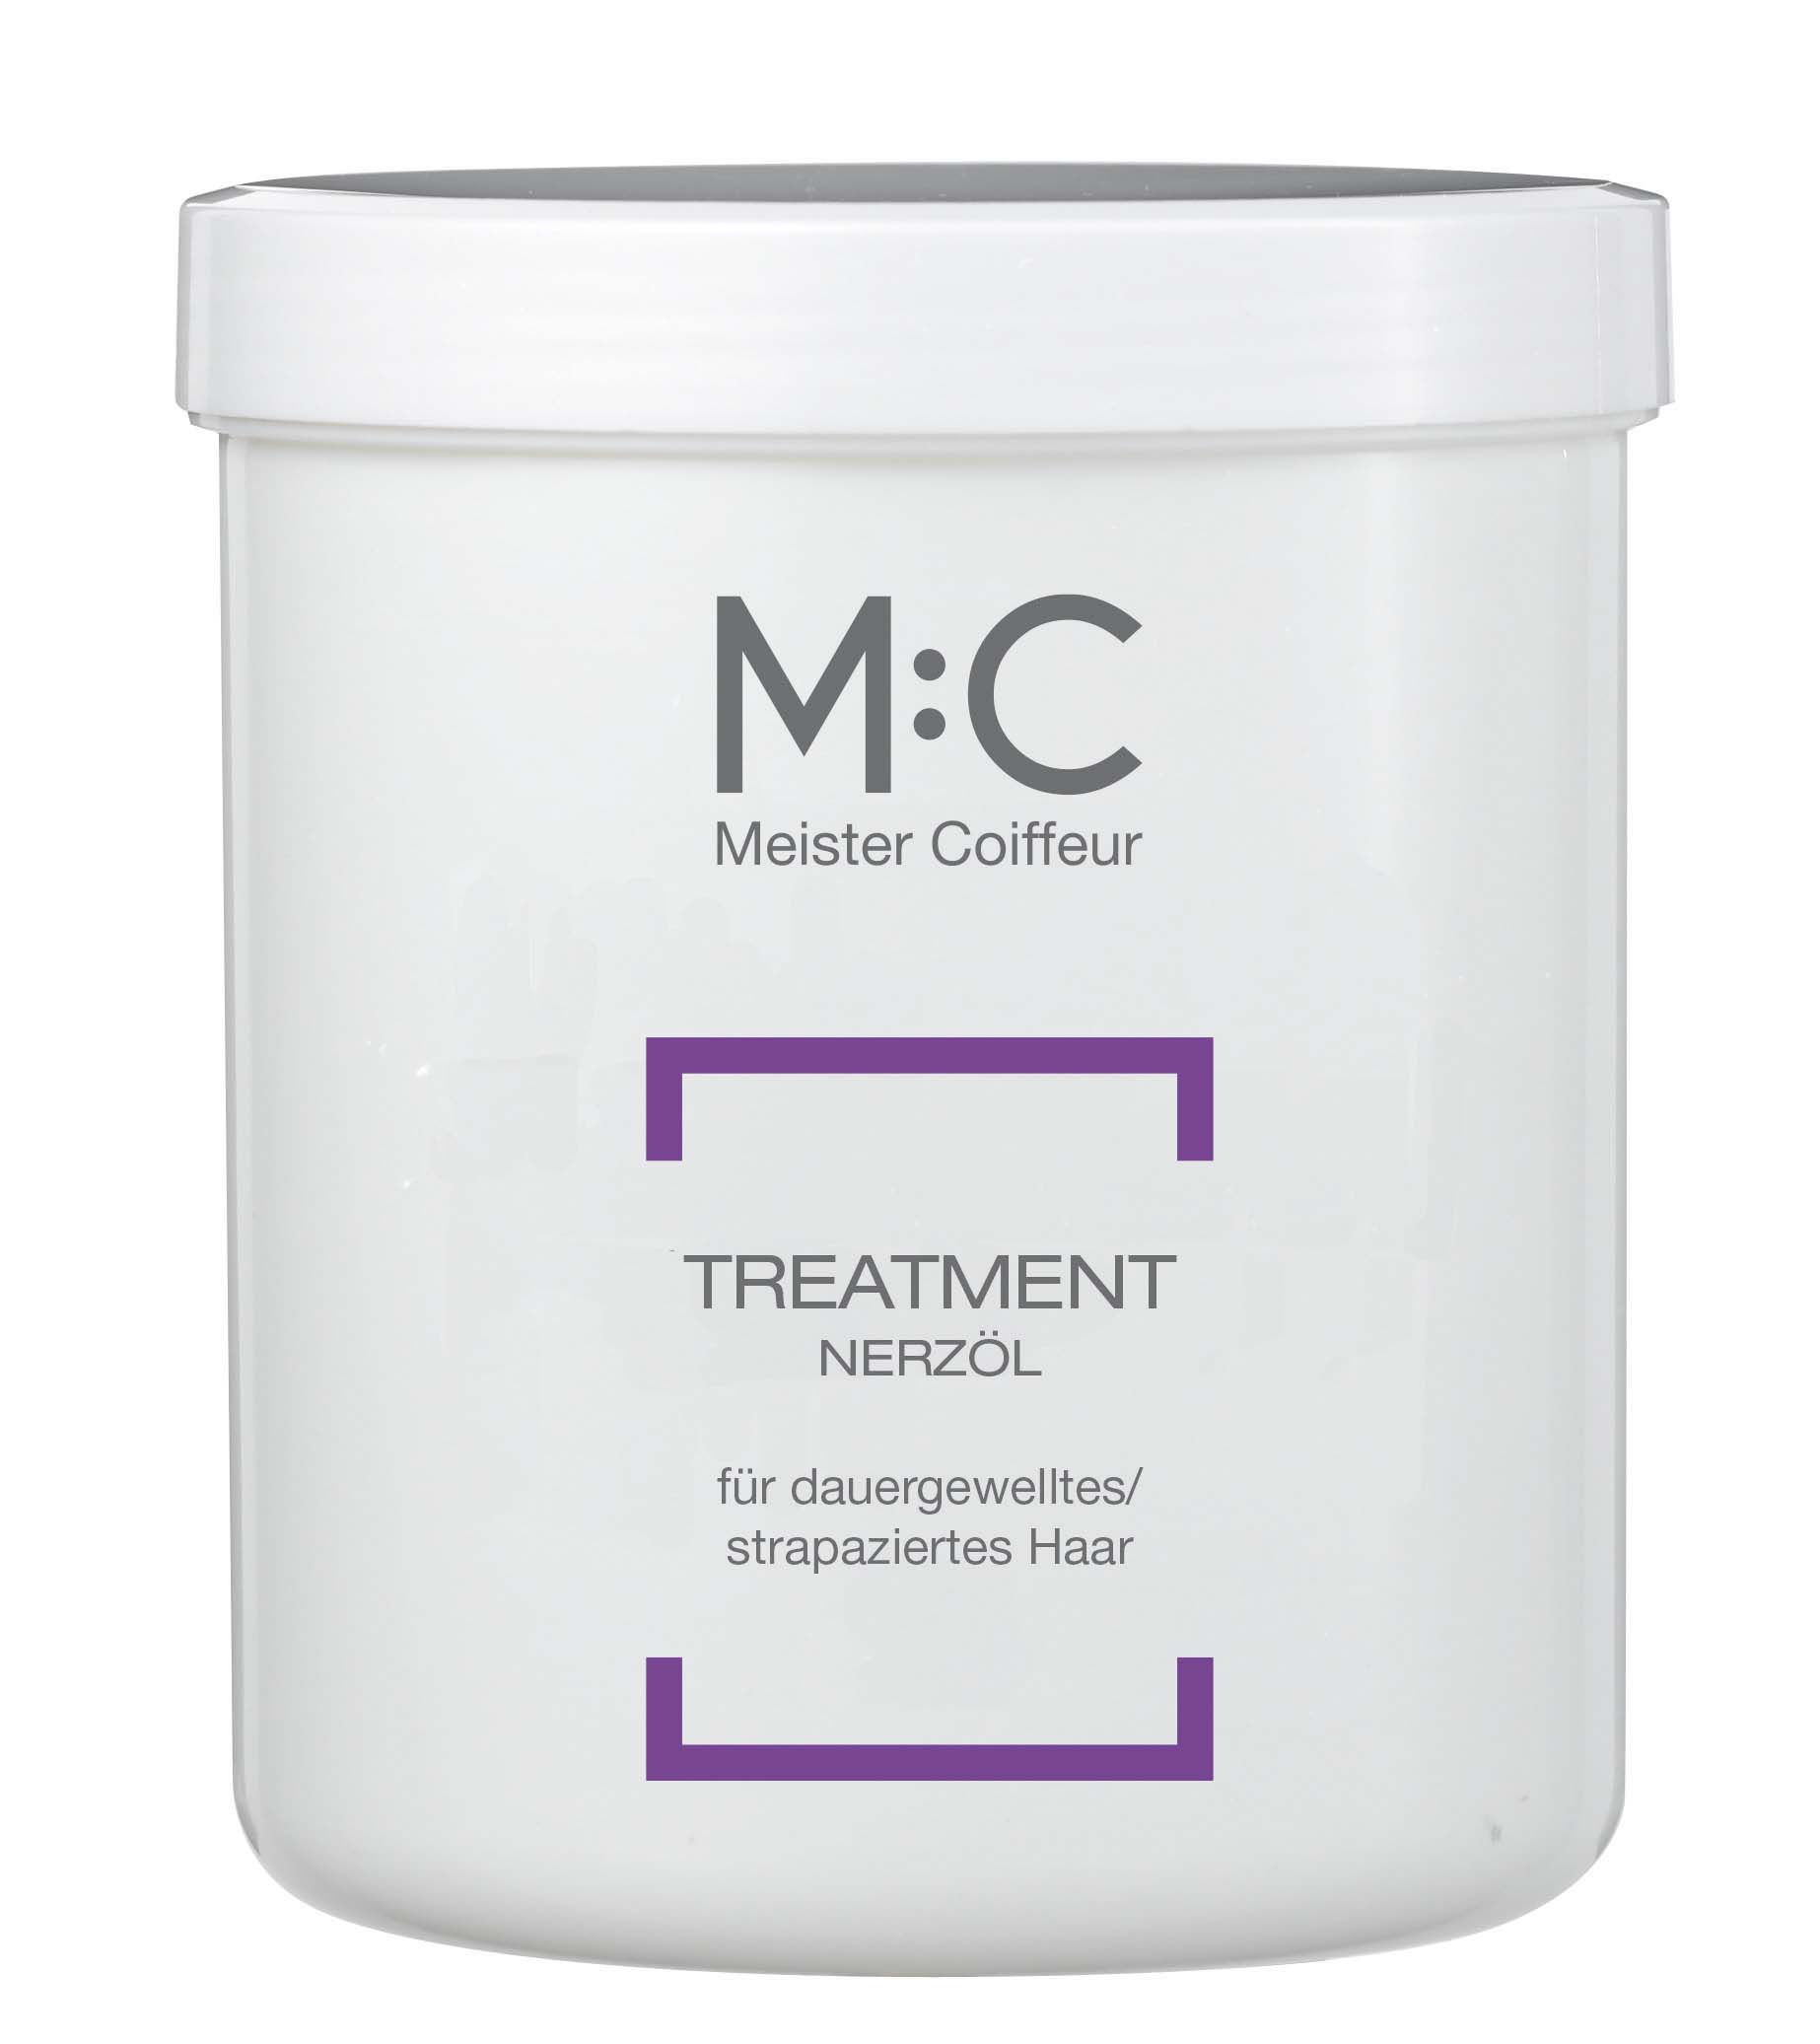 M:C Treatment Huile de vison D 1.000 ml